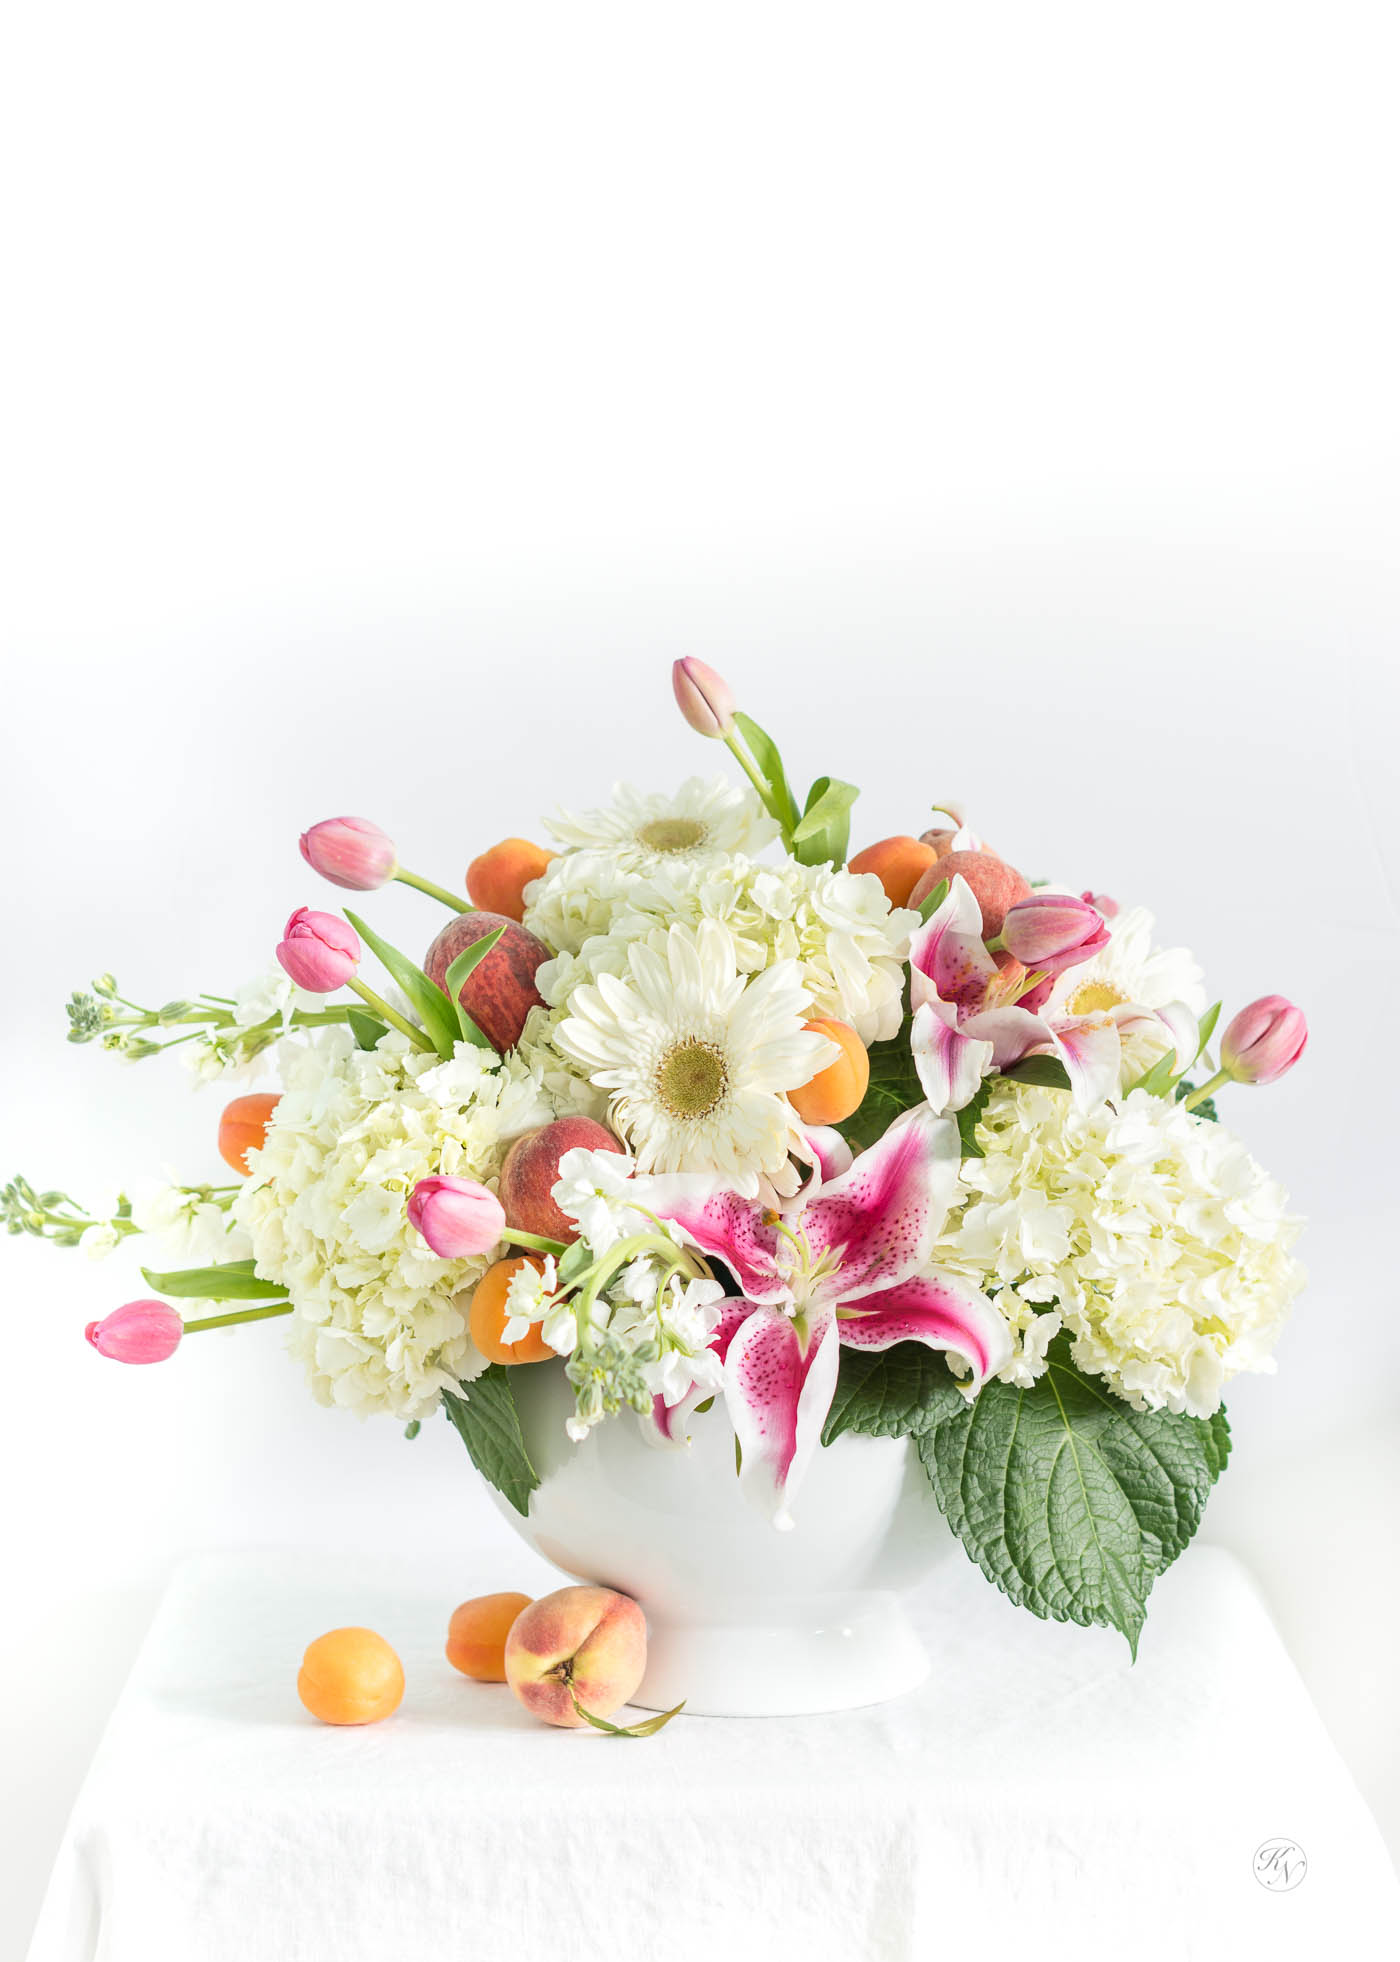 How to create a fruit and floral centerpiece with peaches, apricots, and pink and white flowers